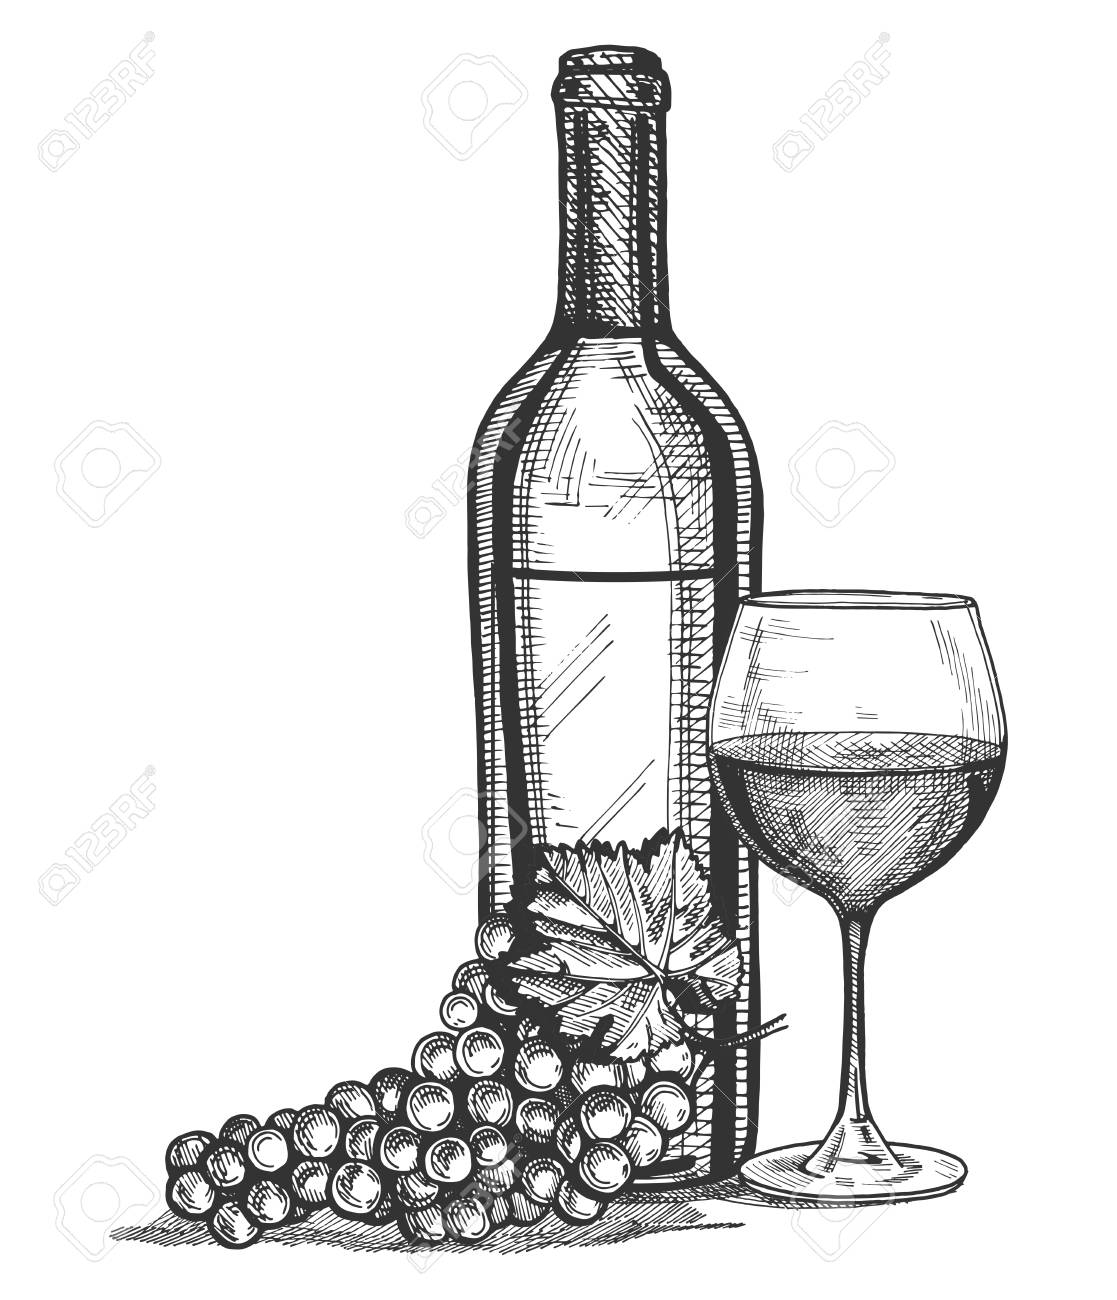 Vector illustration of a wine glass, bottle and grapes bunch still life. Vintage engraving style. - 96687198